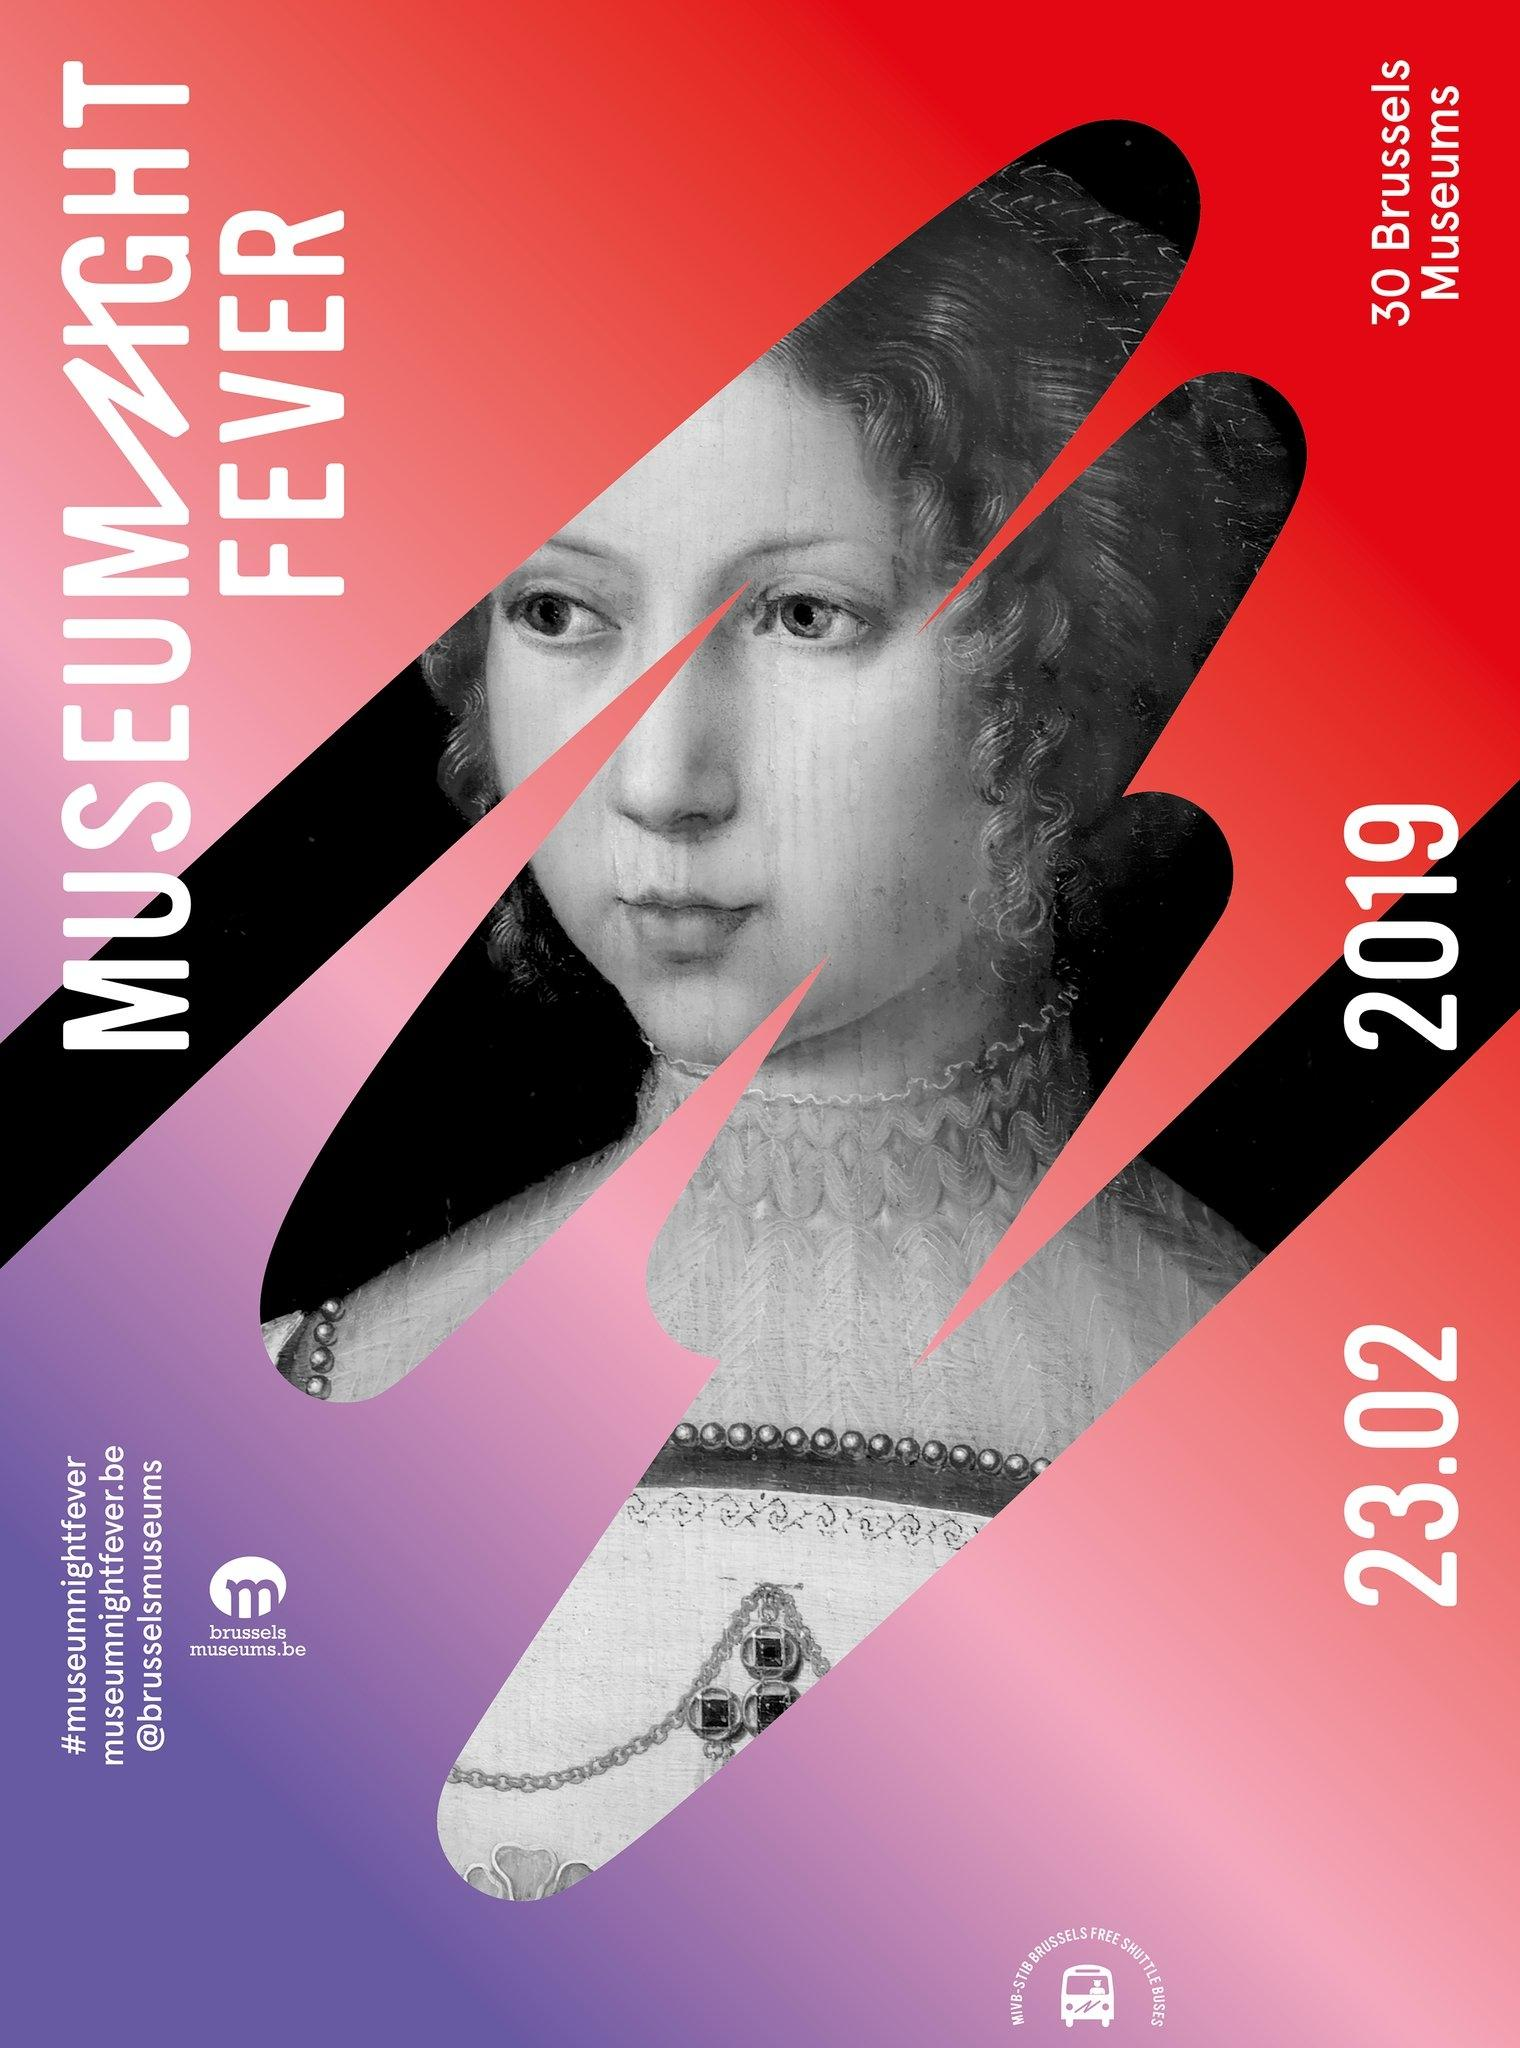 Visual MNF 2019 (c) Brussels Museums